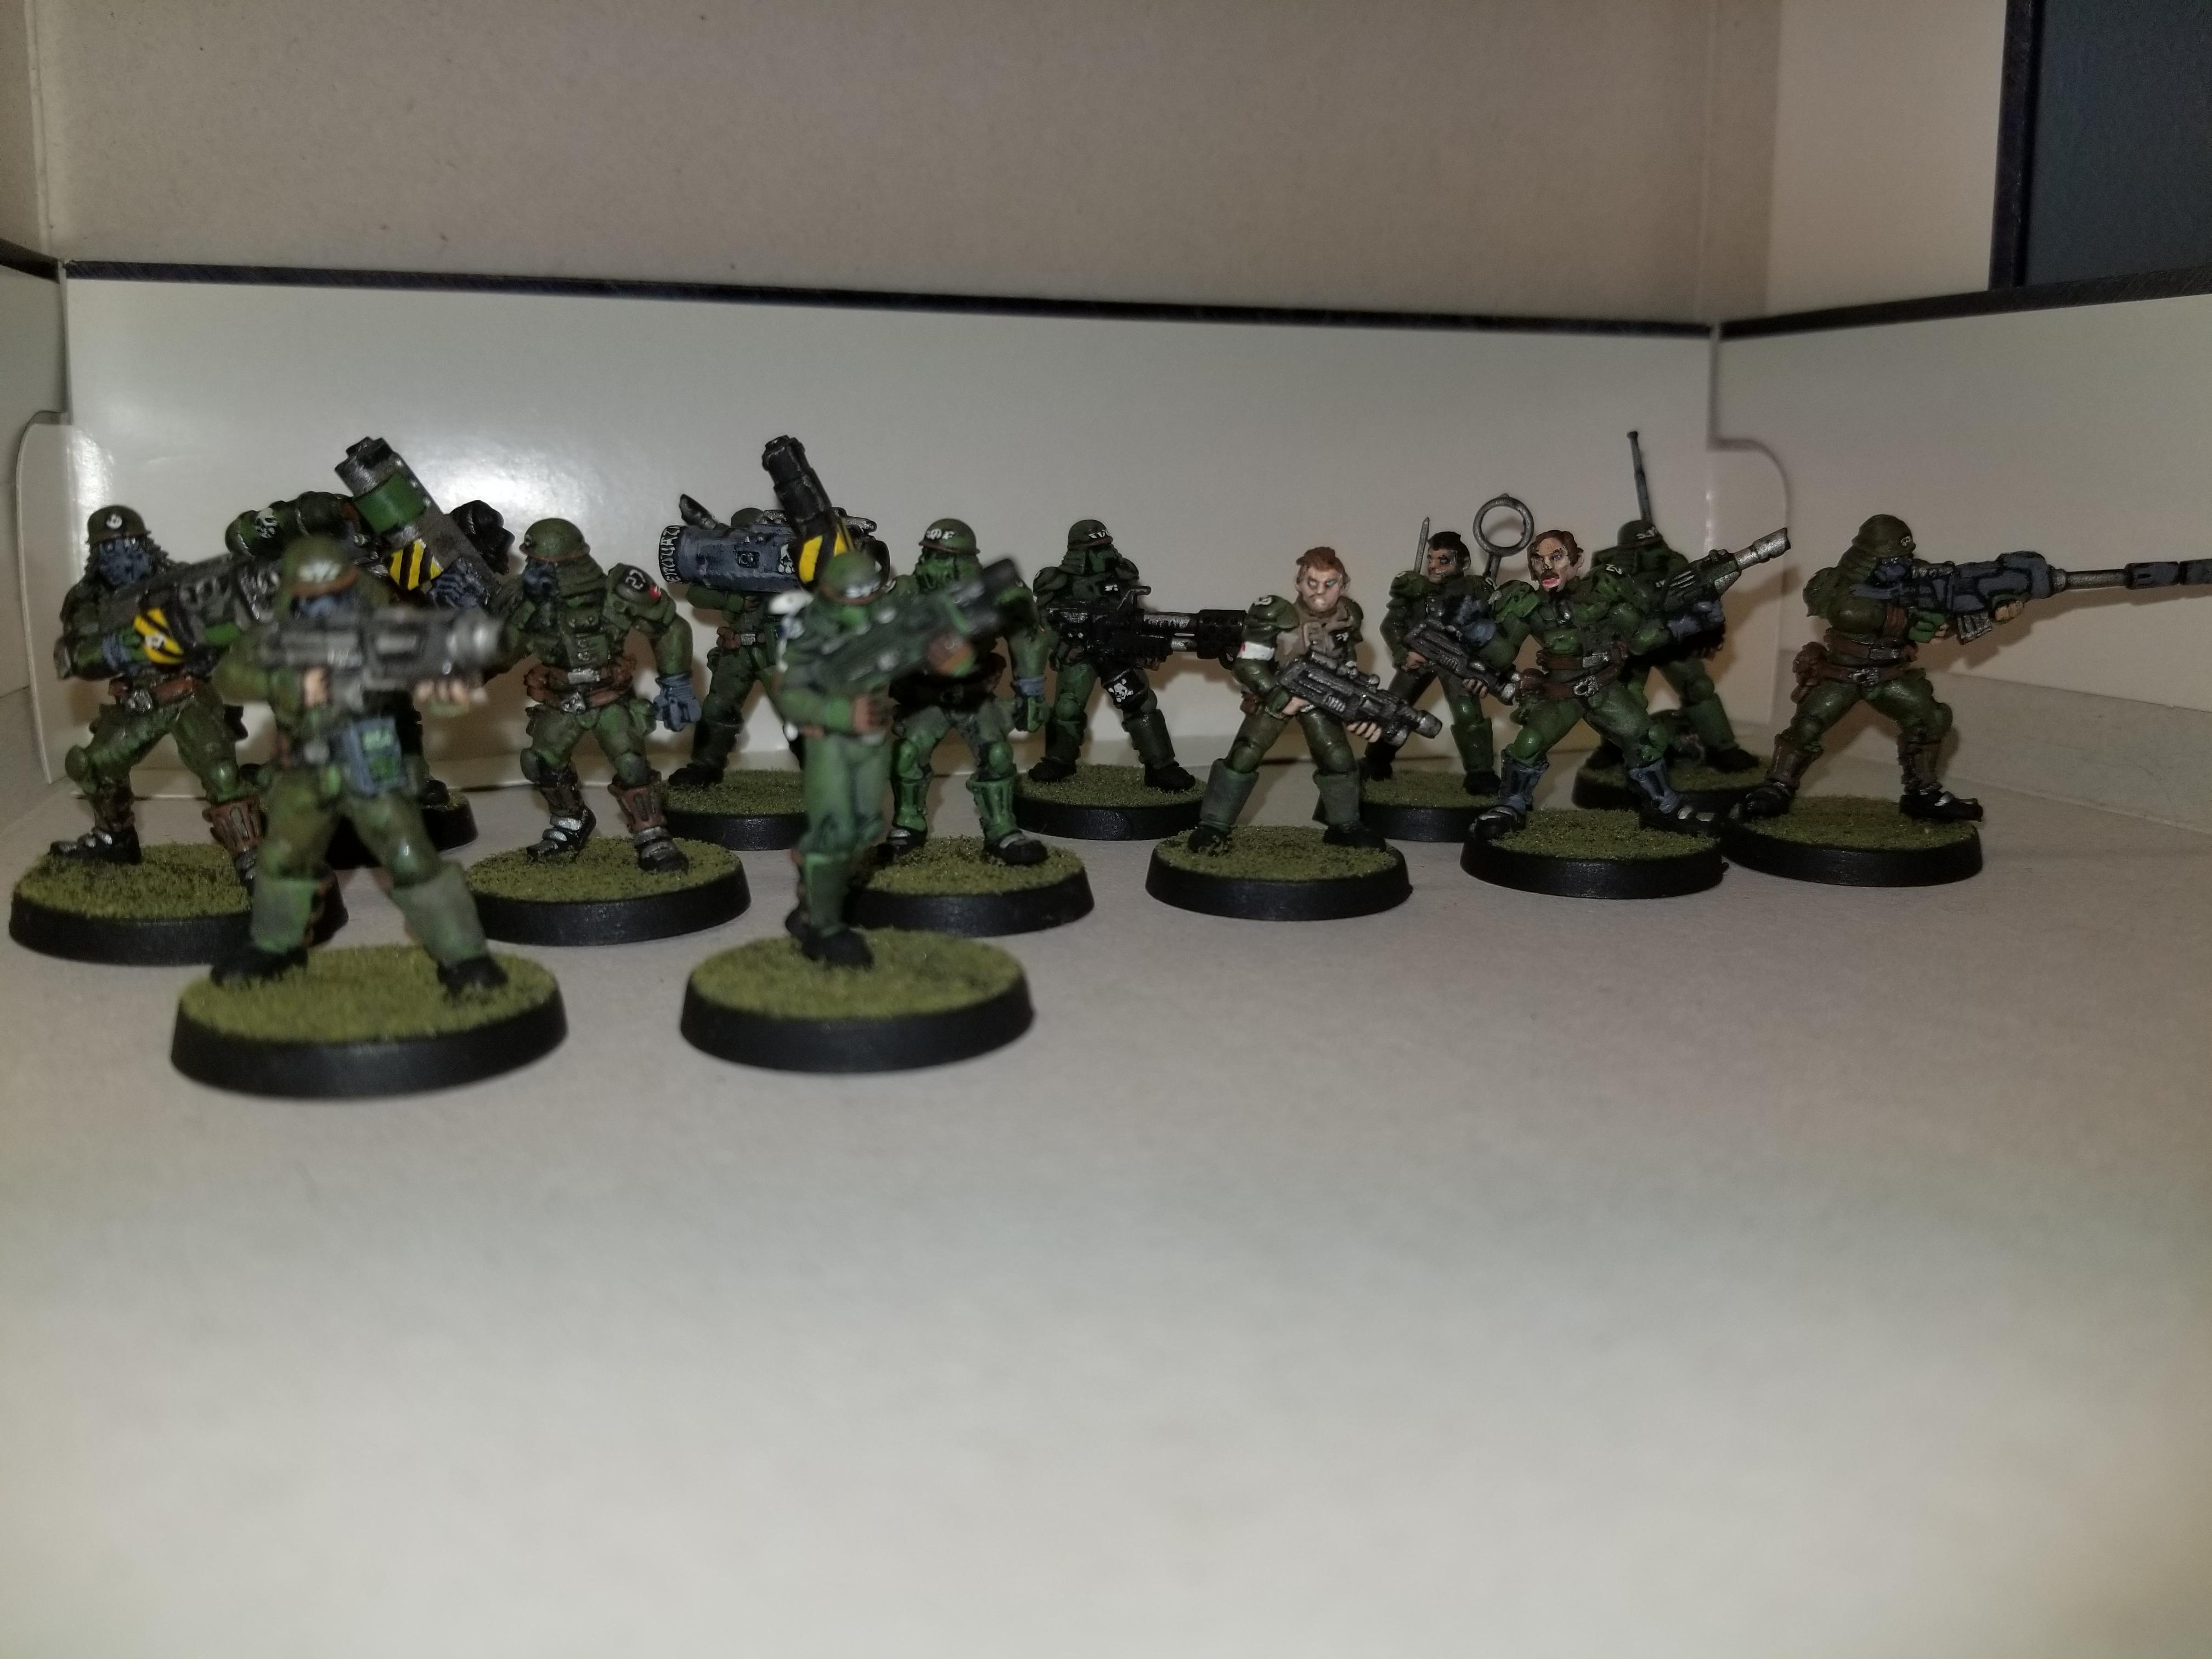 WH40k, Unknown models with conversions to 40k, metal, front